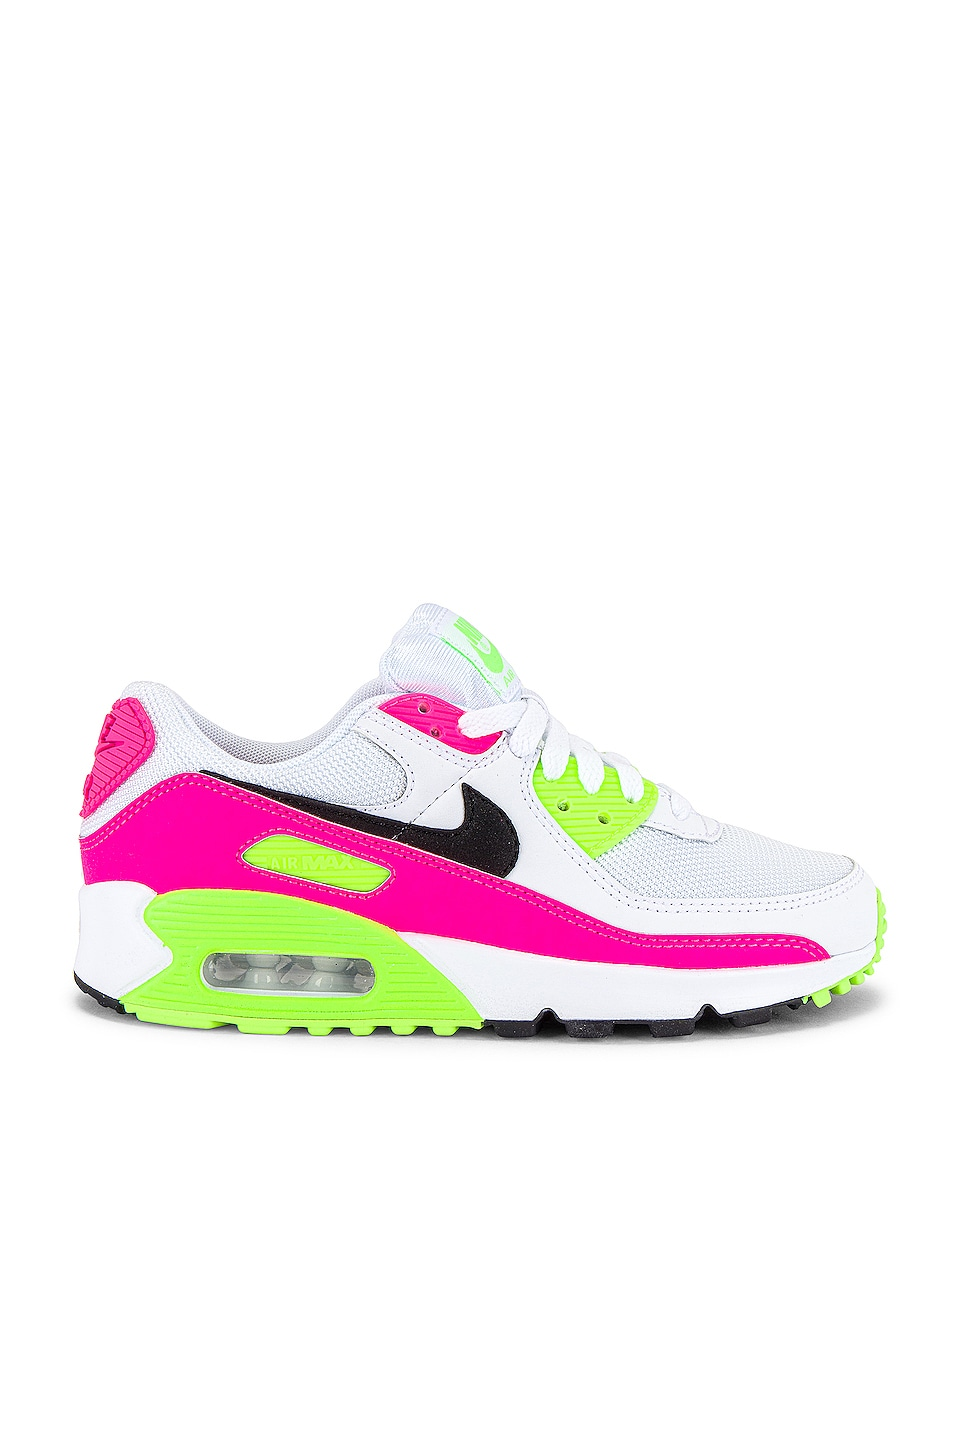 Nike Air Max 90 Sneaker in White, Pink